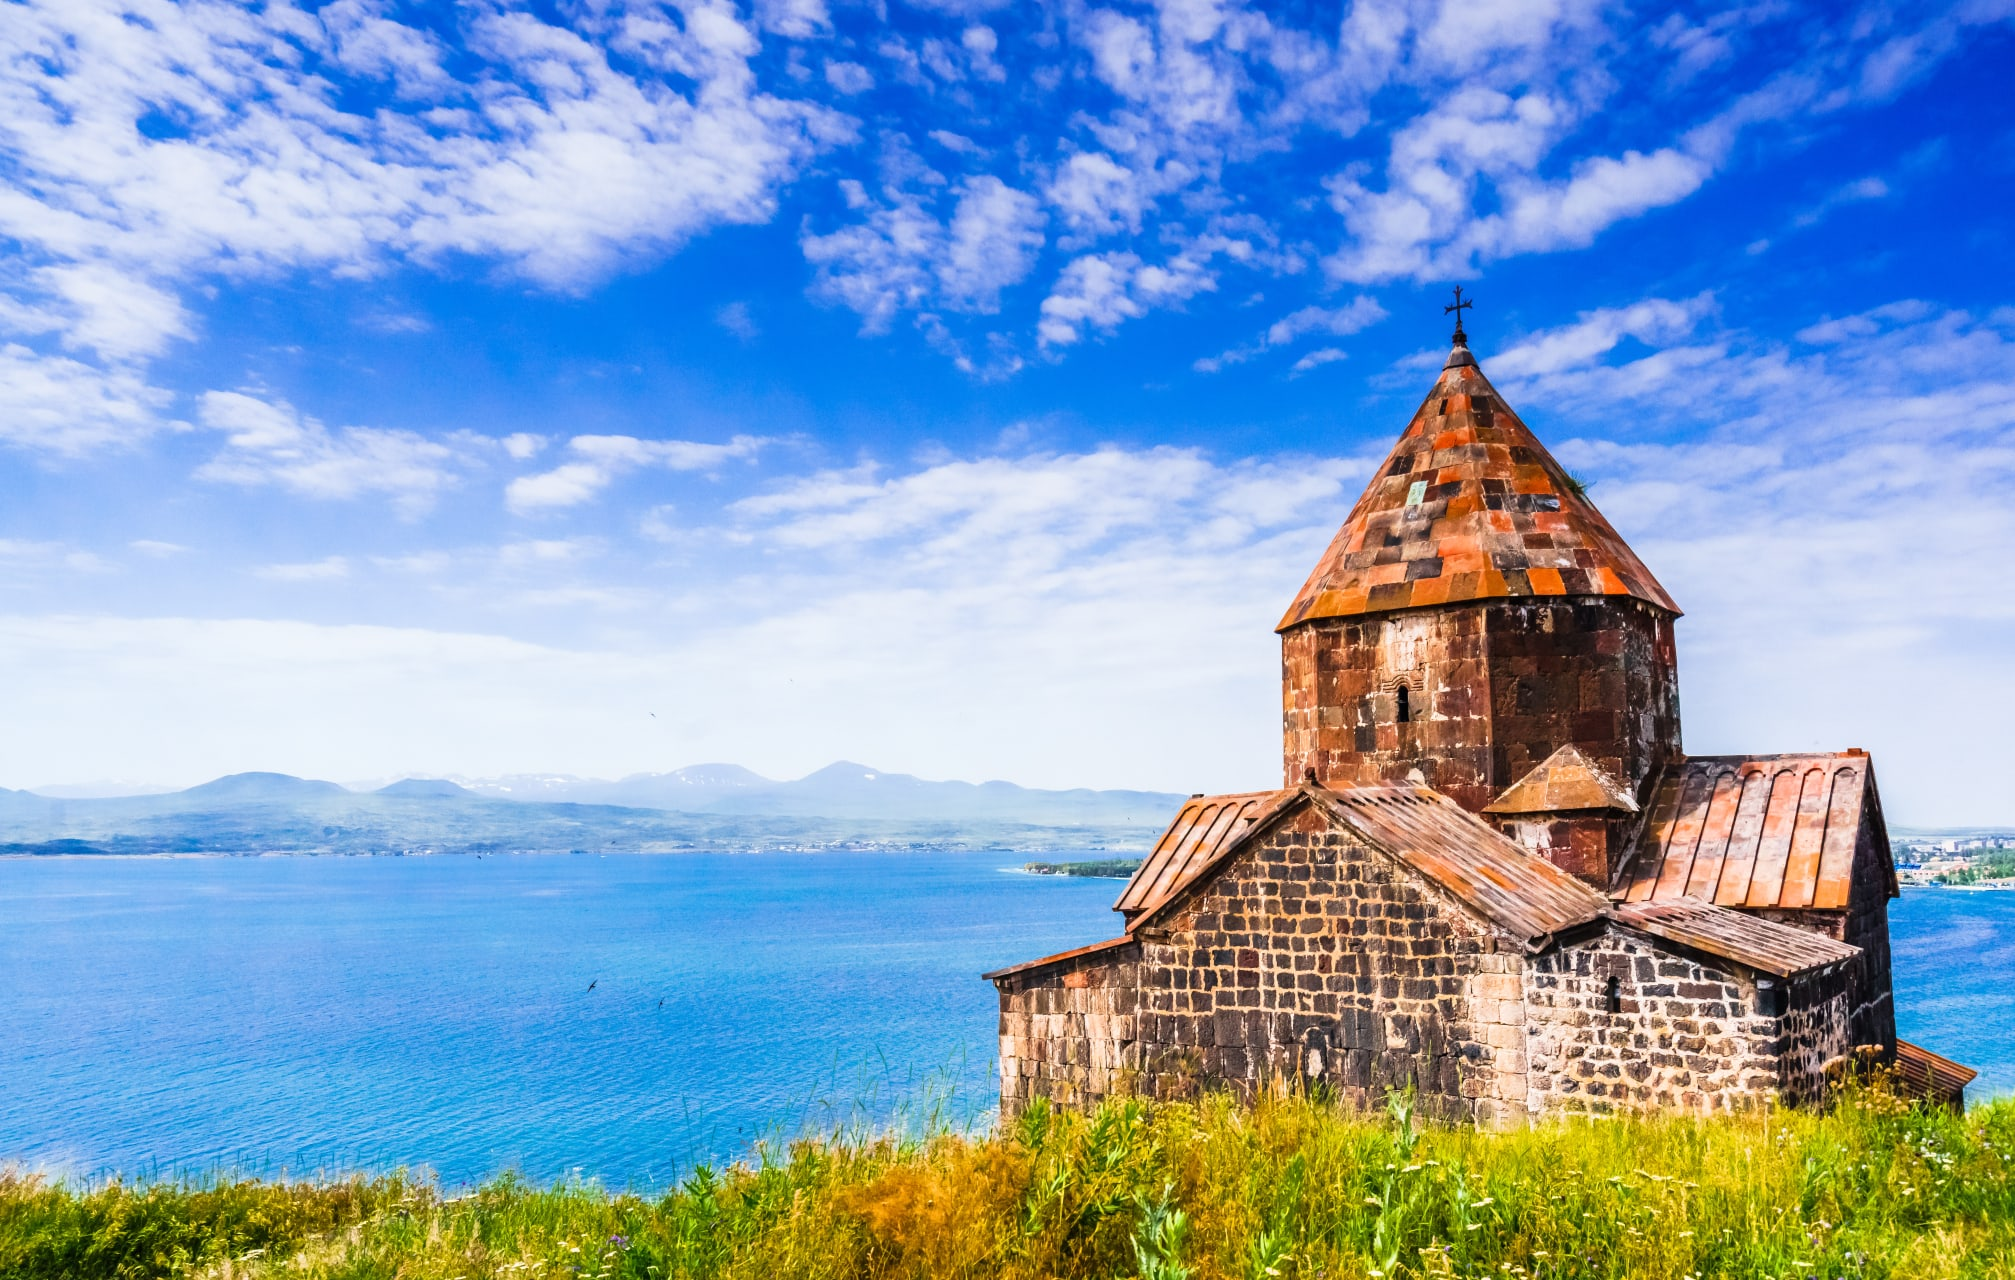 Yerevan - Explore the Largest Lake in Armenia and the Monastery on its Shore